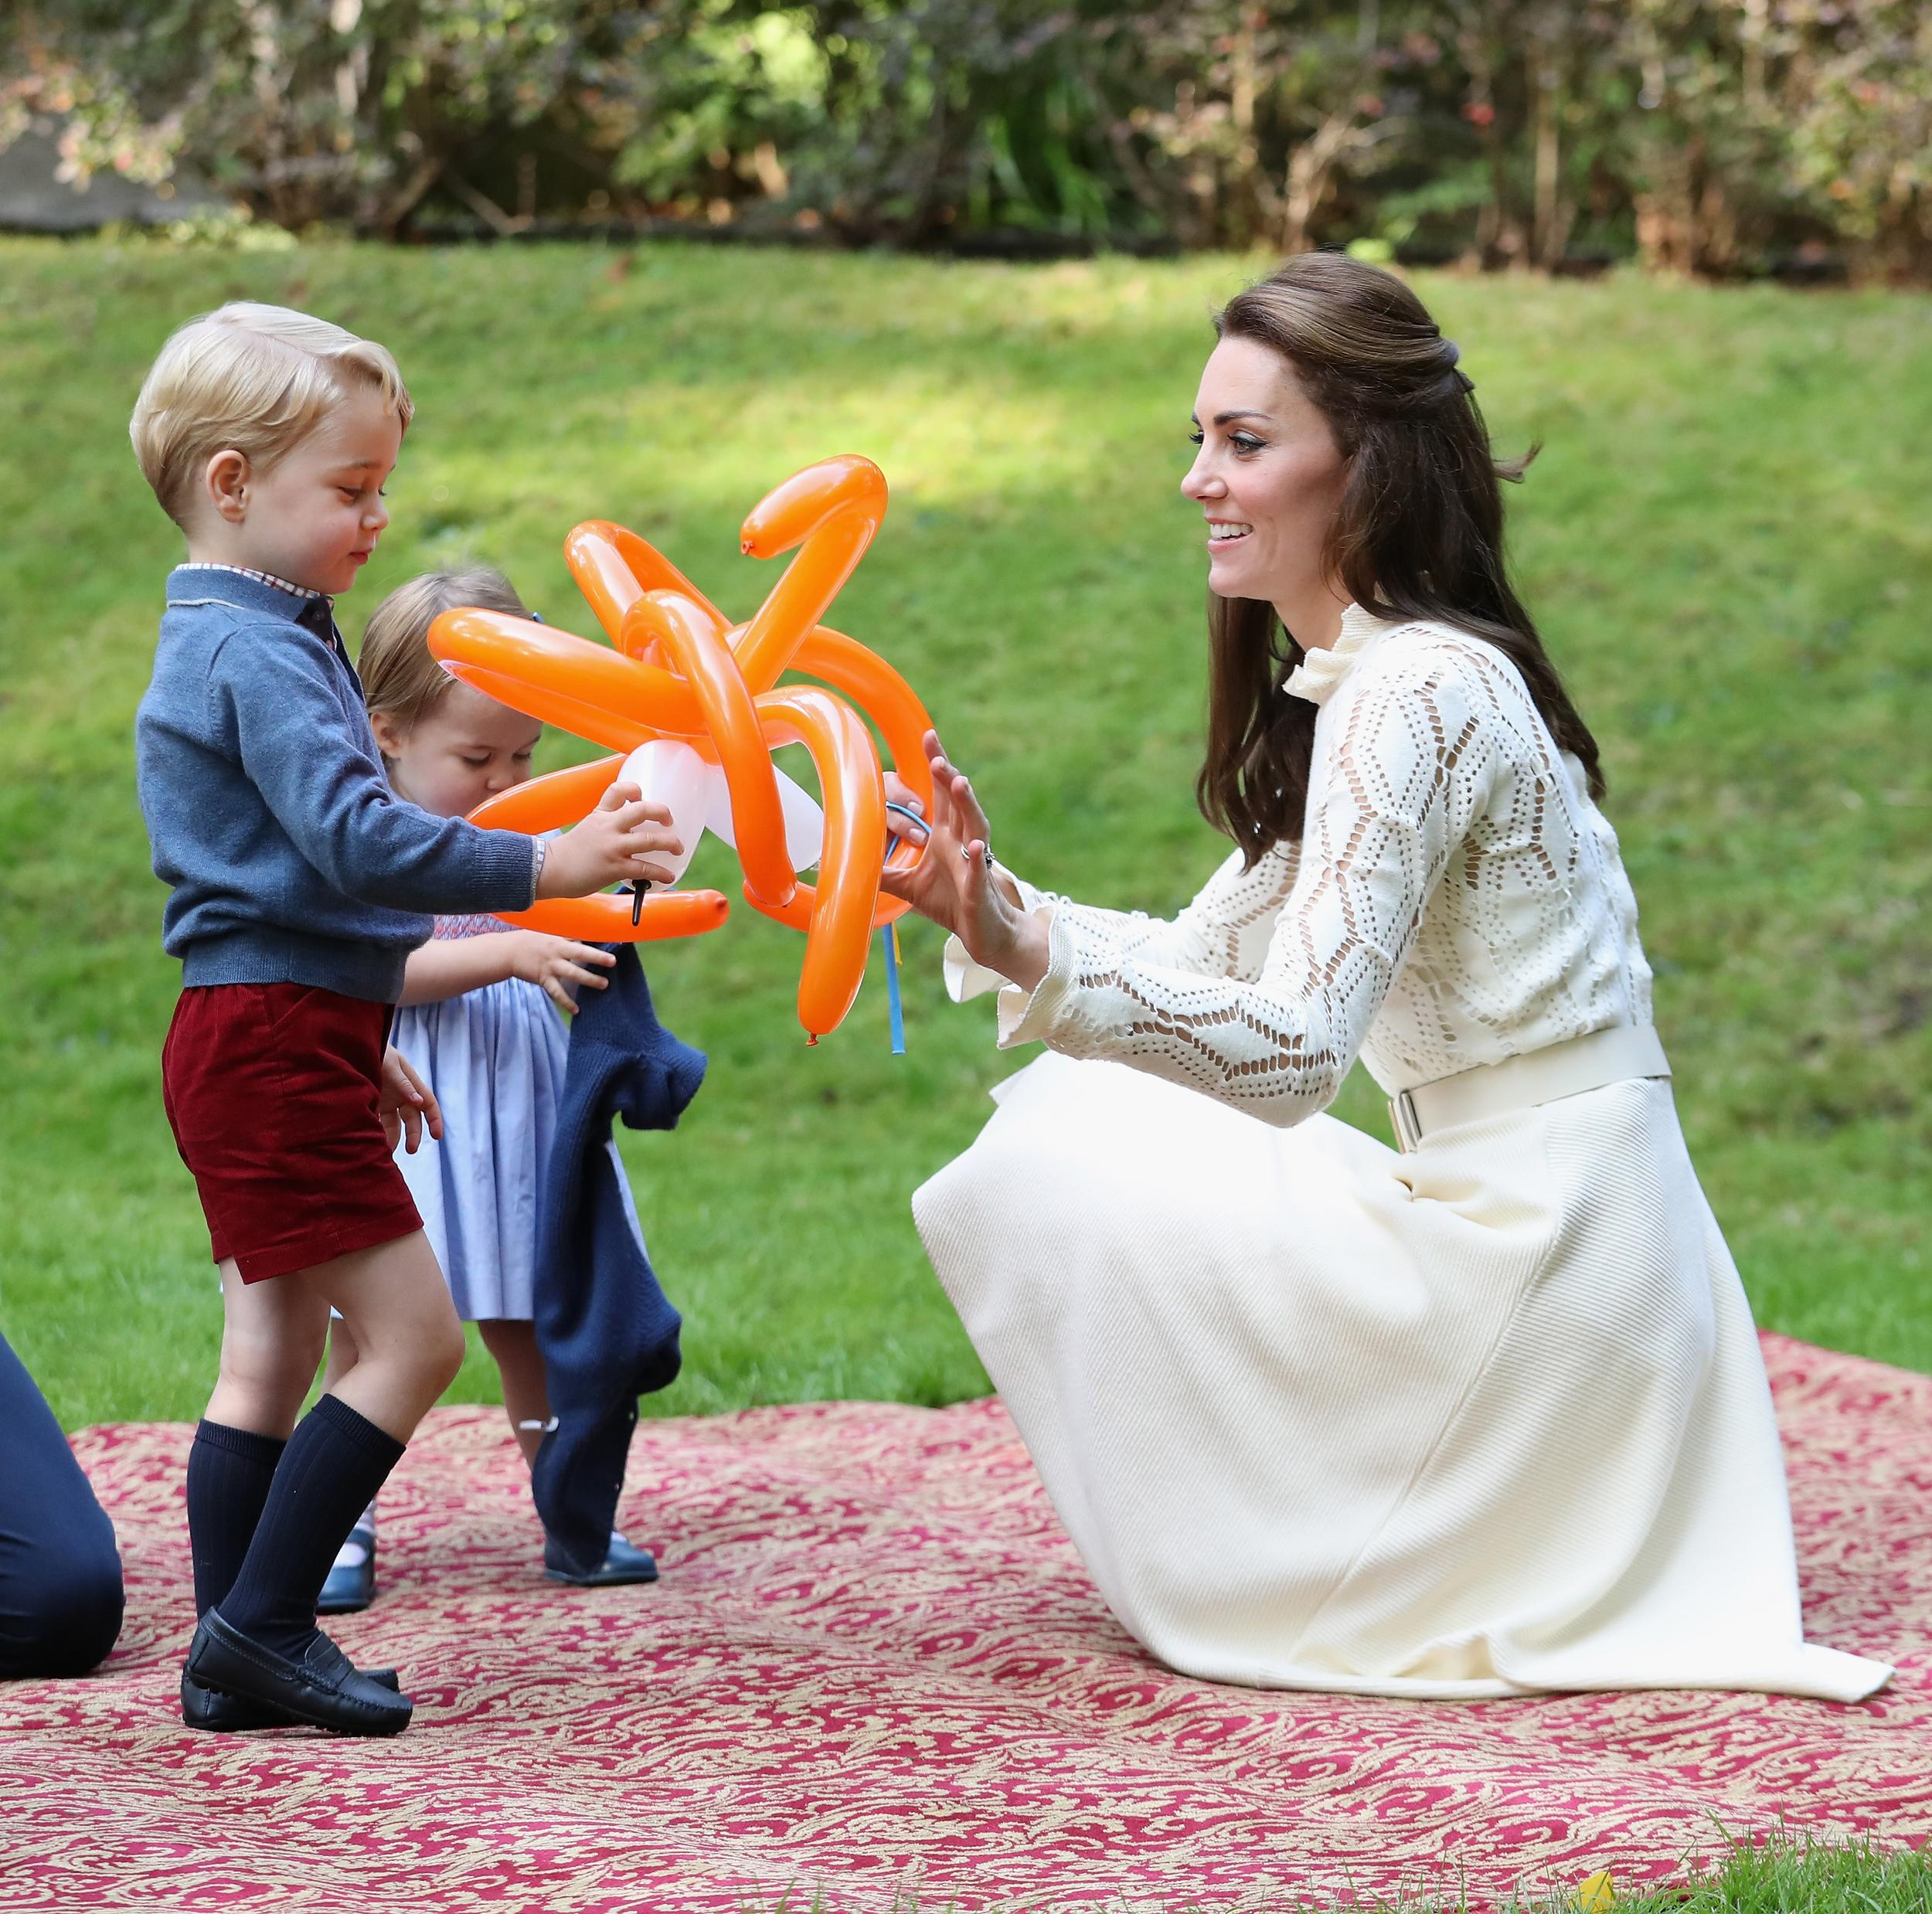 File photo dated 29/09/16 of the Duchess of Cambridge with her children Prince George and Princess Charlotte at a children's party for Military families at Government House in Victoria during the Royal Tour of Canada.